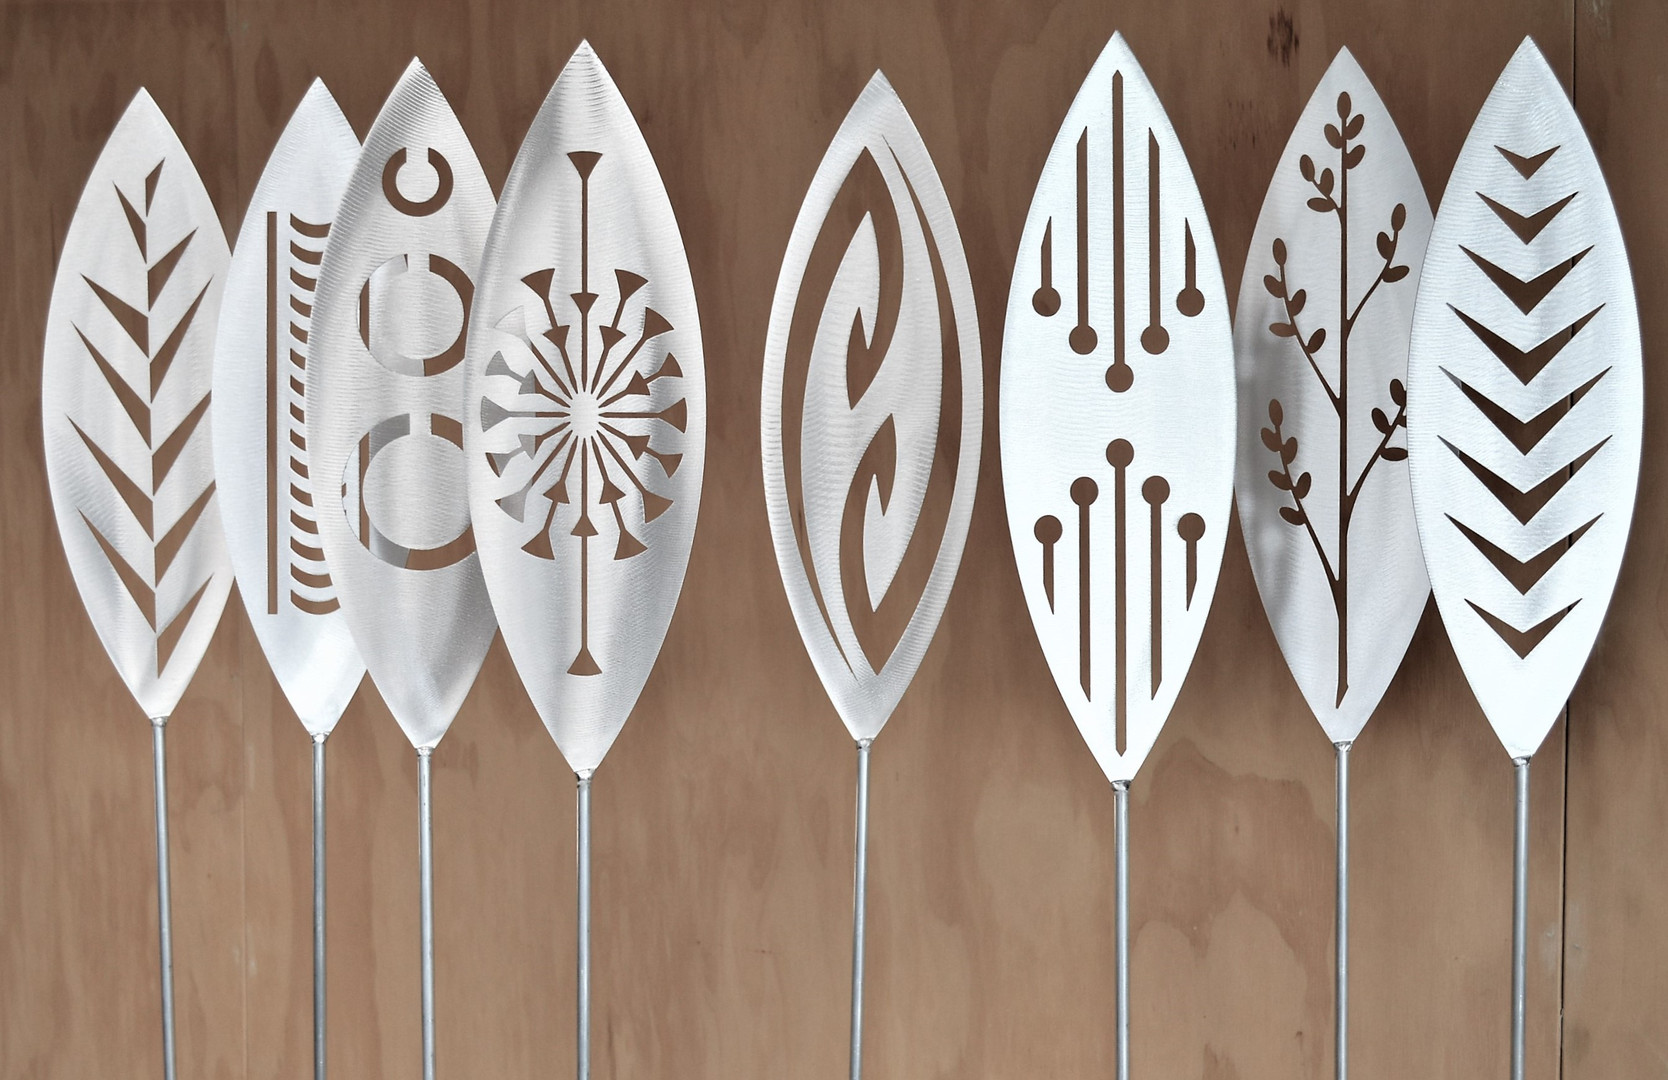 Rise & Shine Spears - all 8 of our designs - $85 each